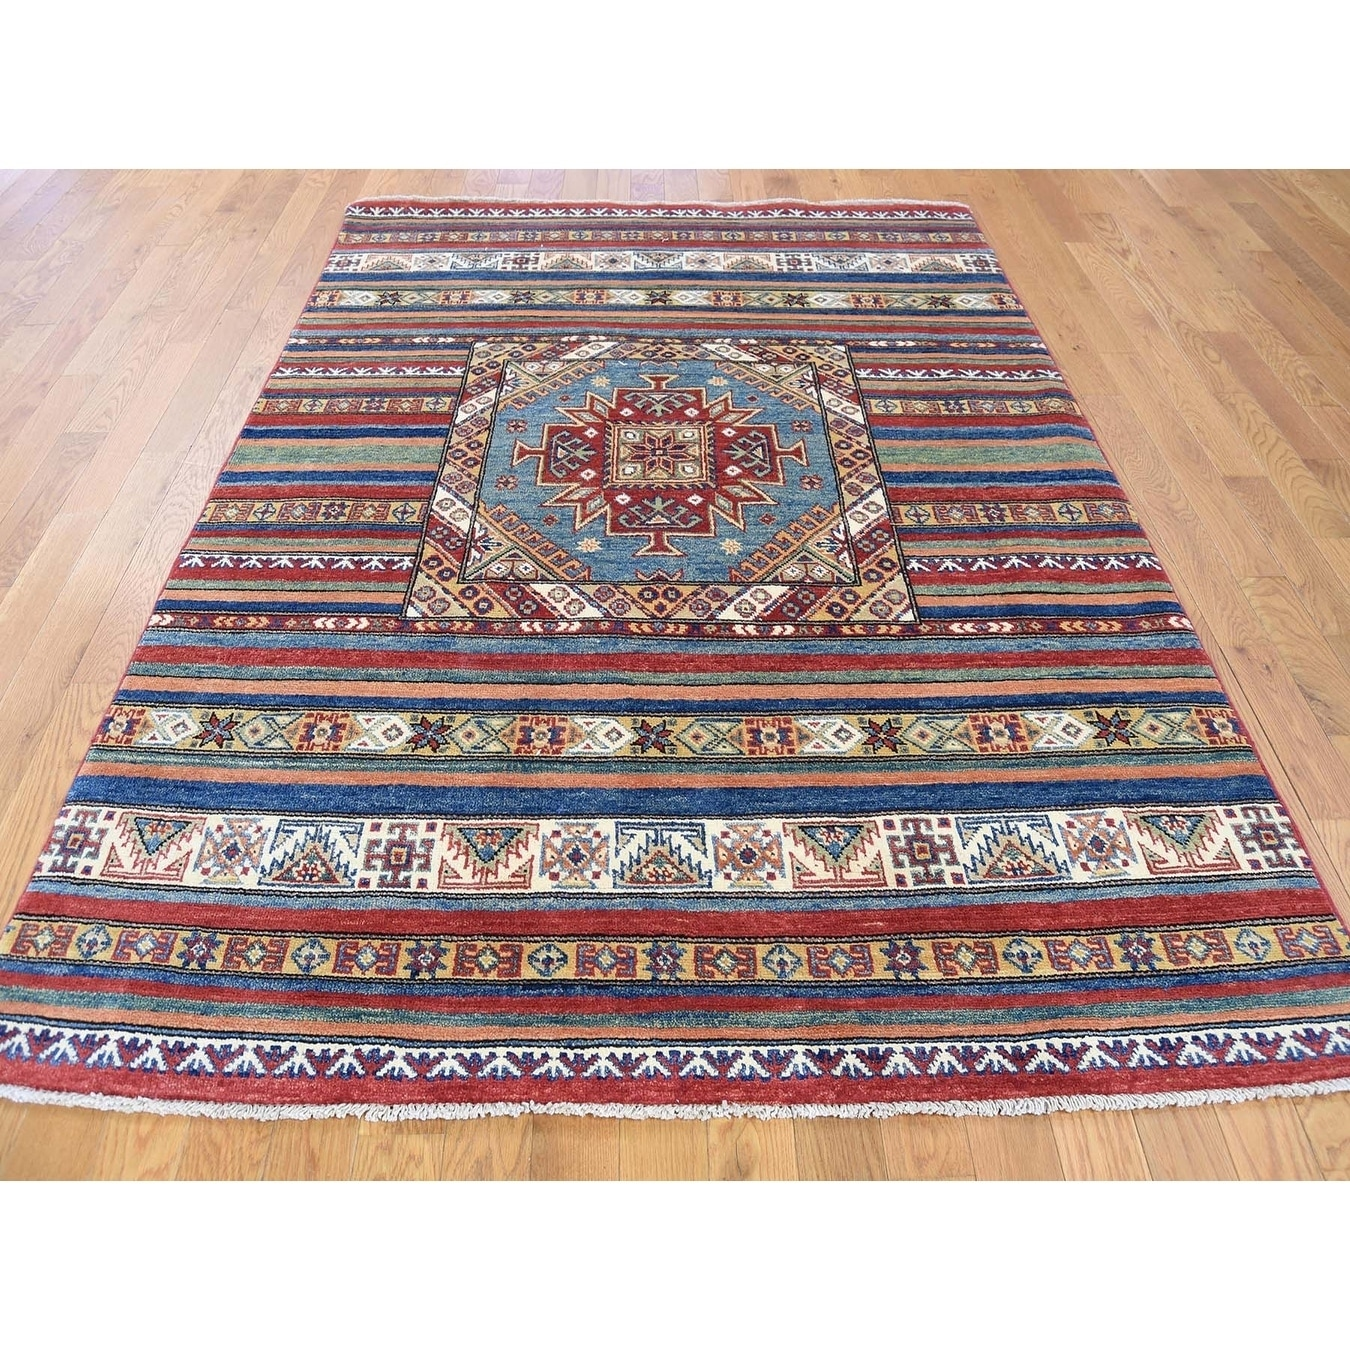 Hand Knotted Multicolored Kazak with Wool Oriental Rug - 410 x 65